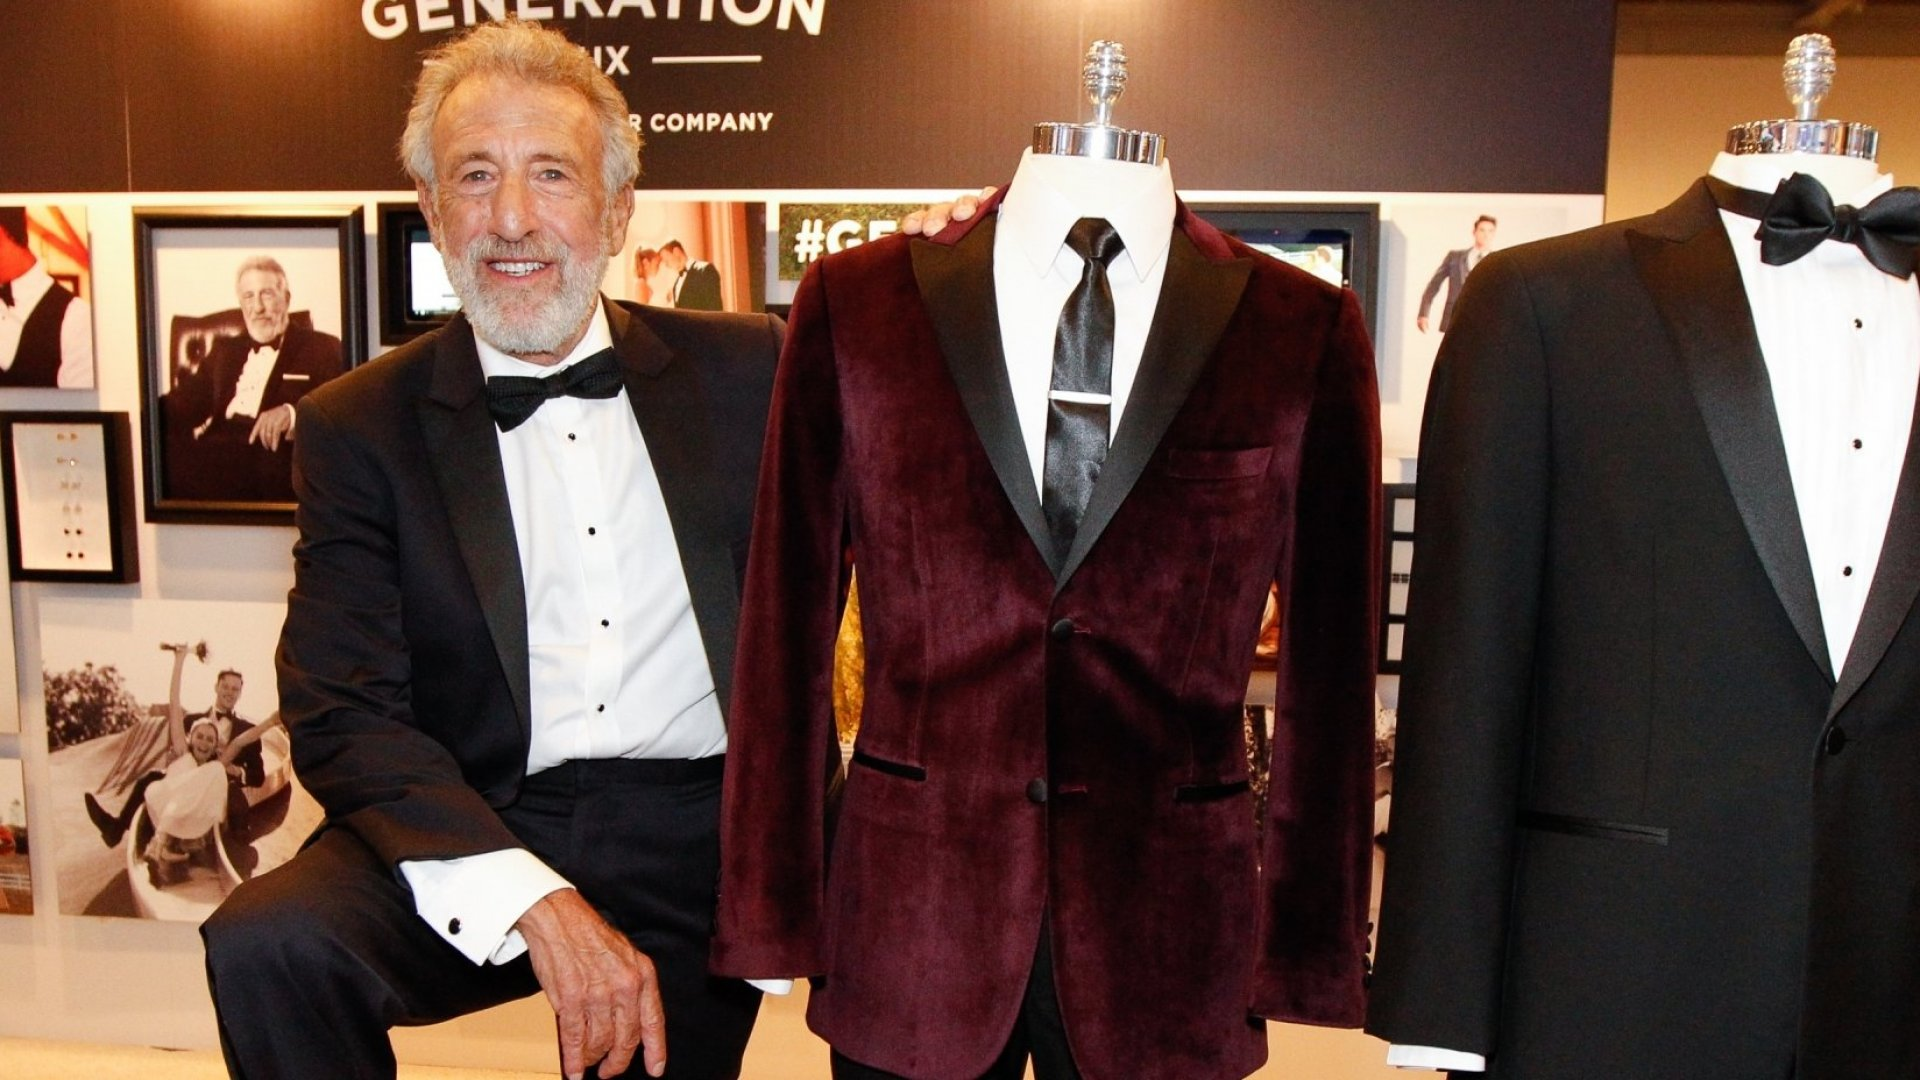 George Zimmer started two different companies after he was ousted from Men's Wearhouse. Now he wants his baby back.